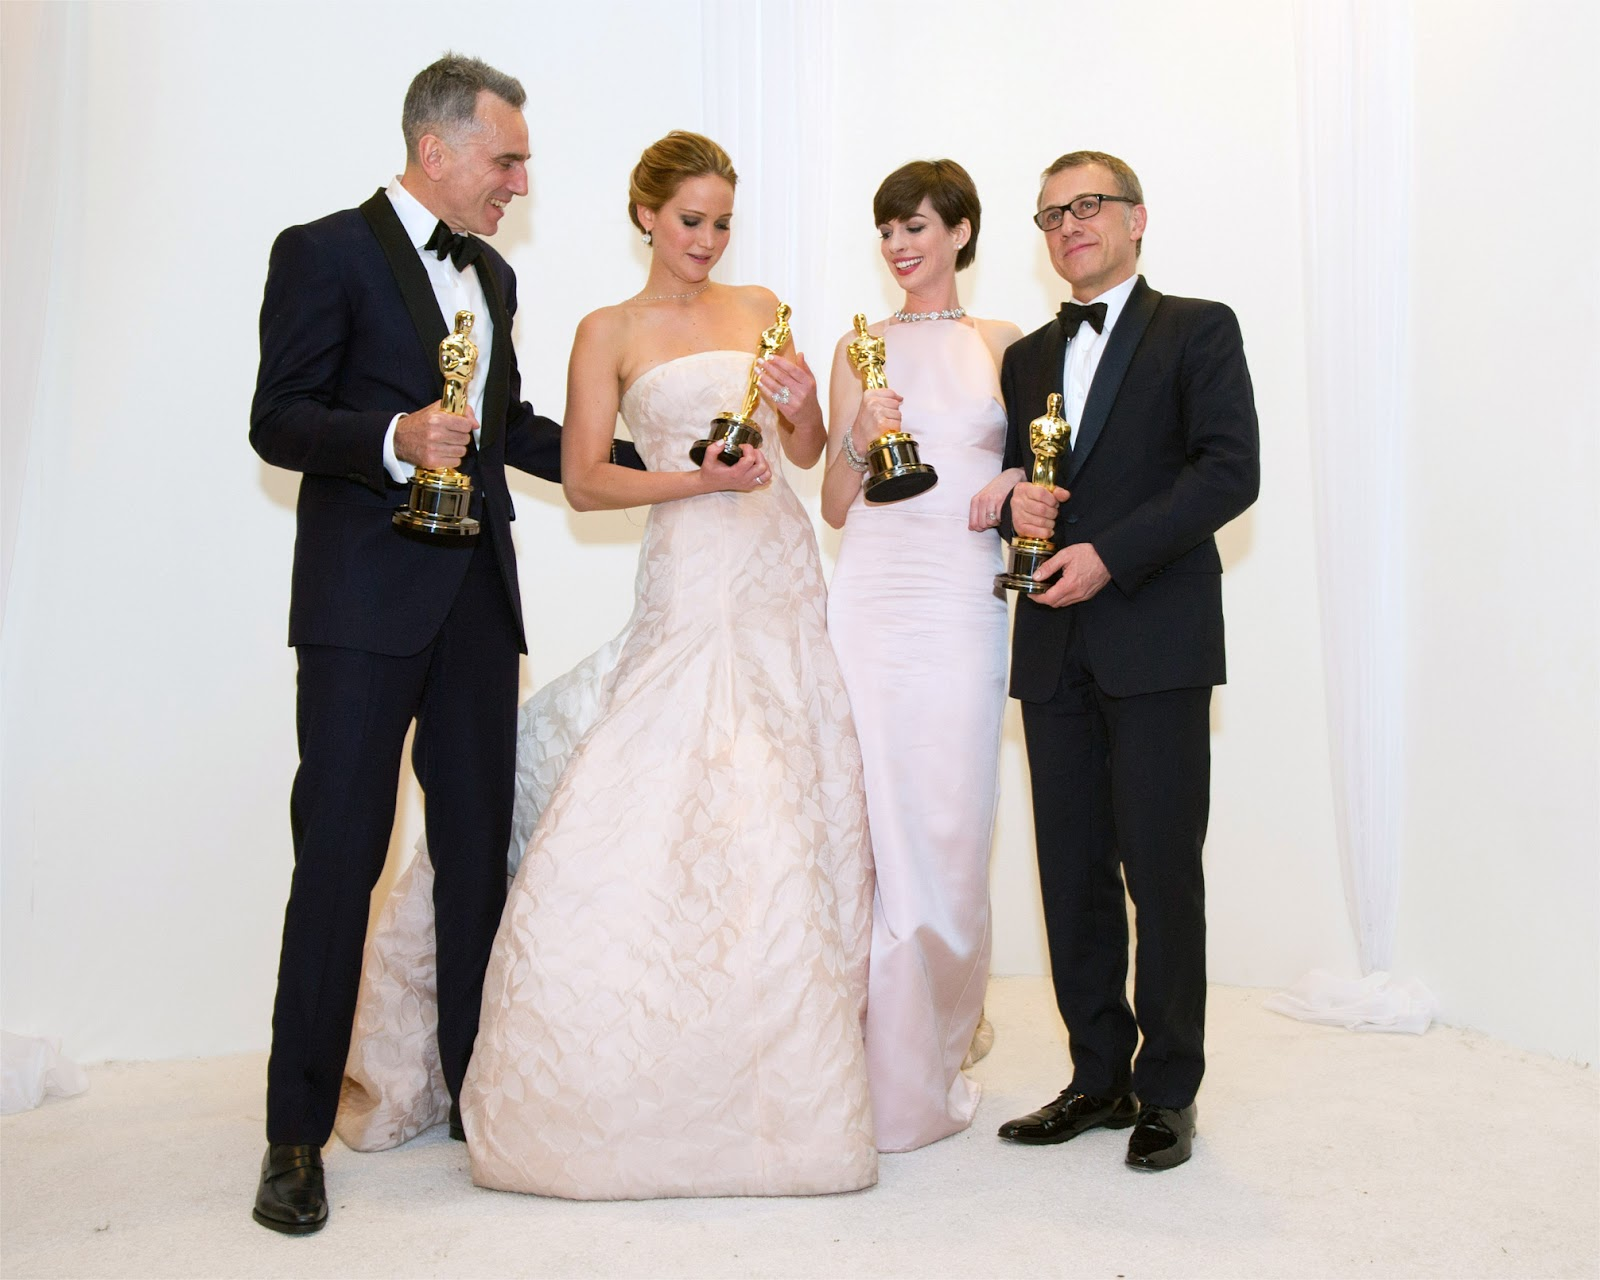 http://3.bp.blogspot.com/-Ajn1Es2n6pY/US2FjOUqGwI/AAAAAAABX4Q/HtTWjNHUIHk/s1600/Jennifer_Lawrence-Anne_Hathaway-Christoph_Waltz-Daniel_Day-Lewis-the_85th_Academy_Awards-2_24_2013-004.jpg